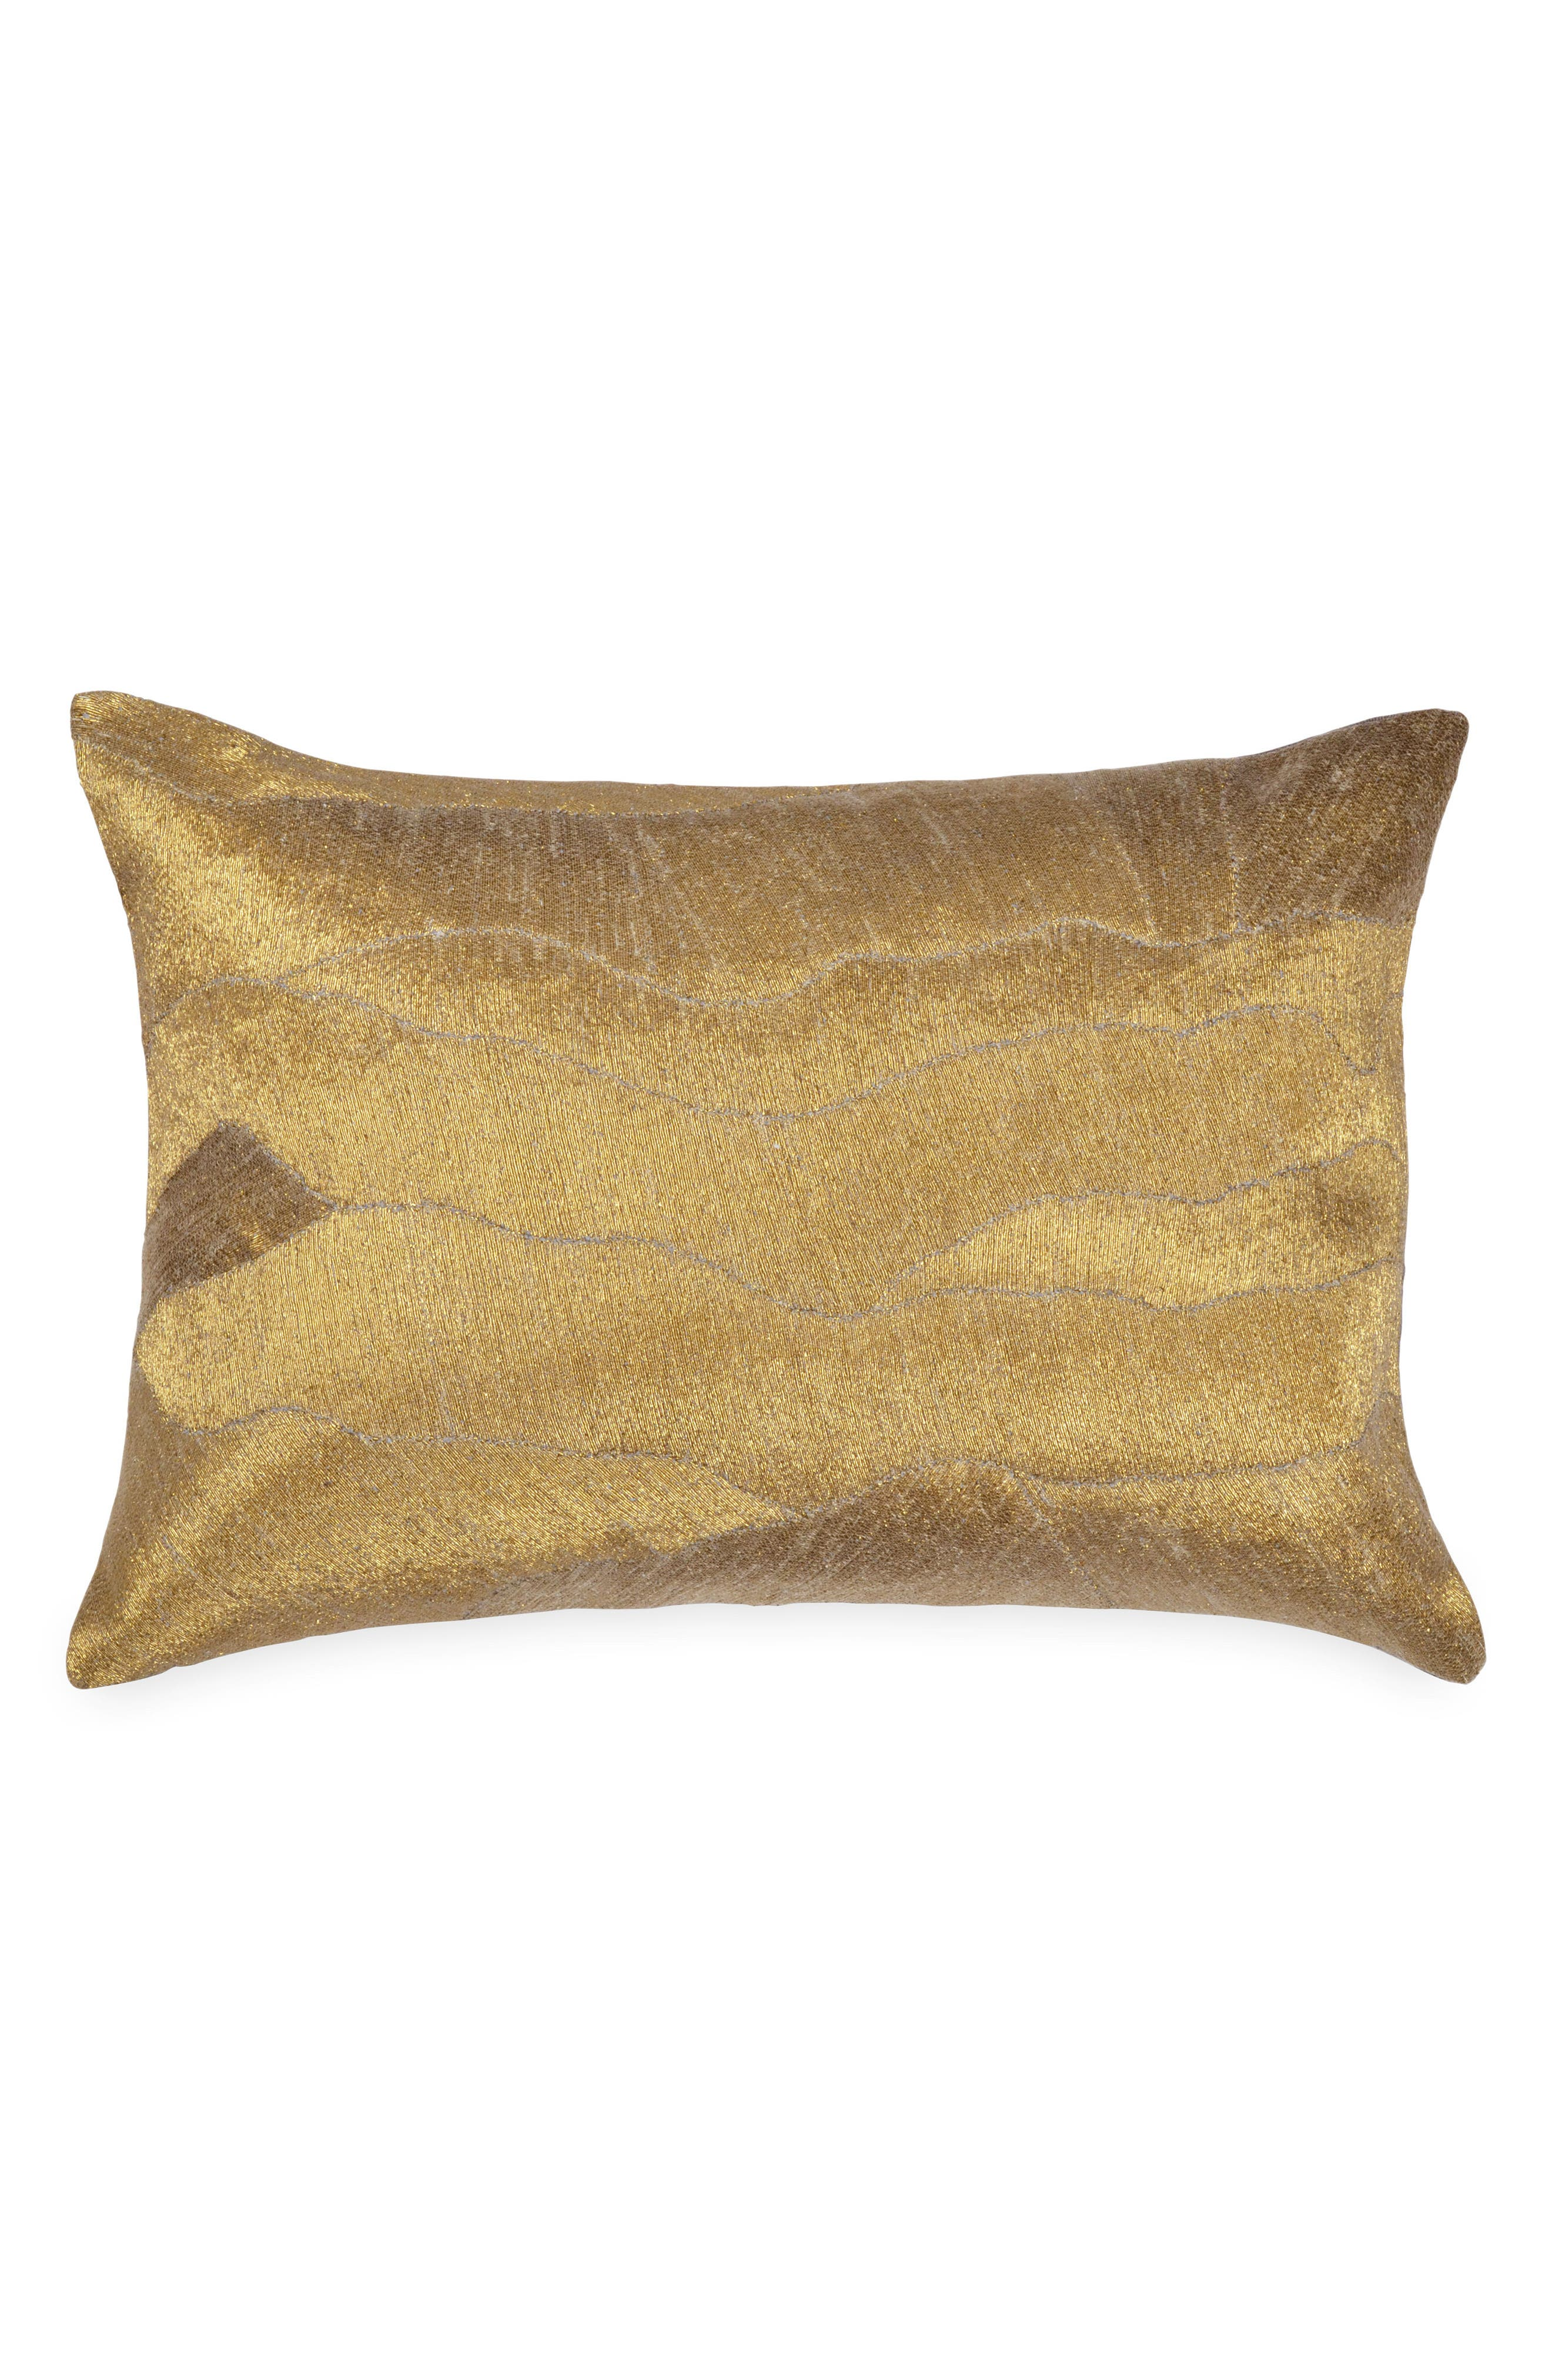 After The Storm Accent Pillow,                             Main thumbnail 1, color,                             GOLD